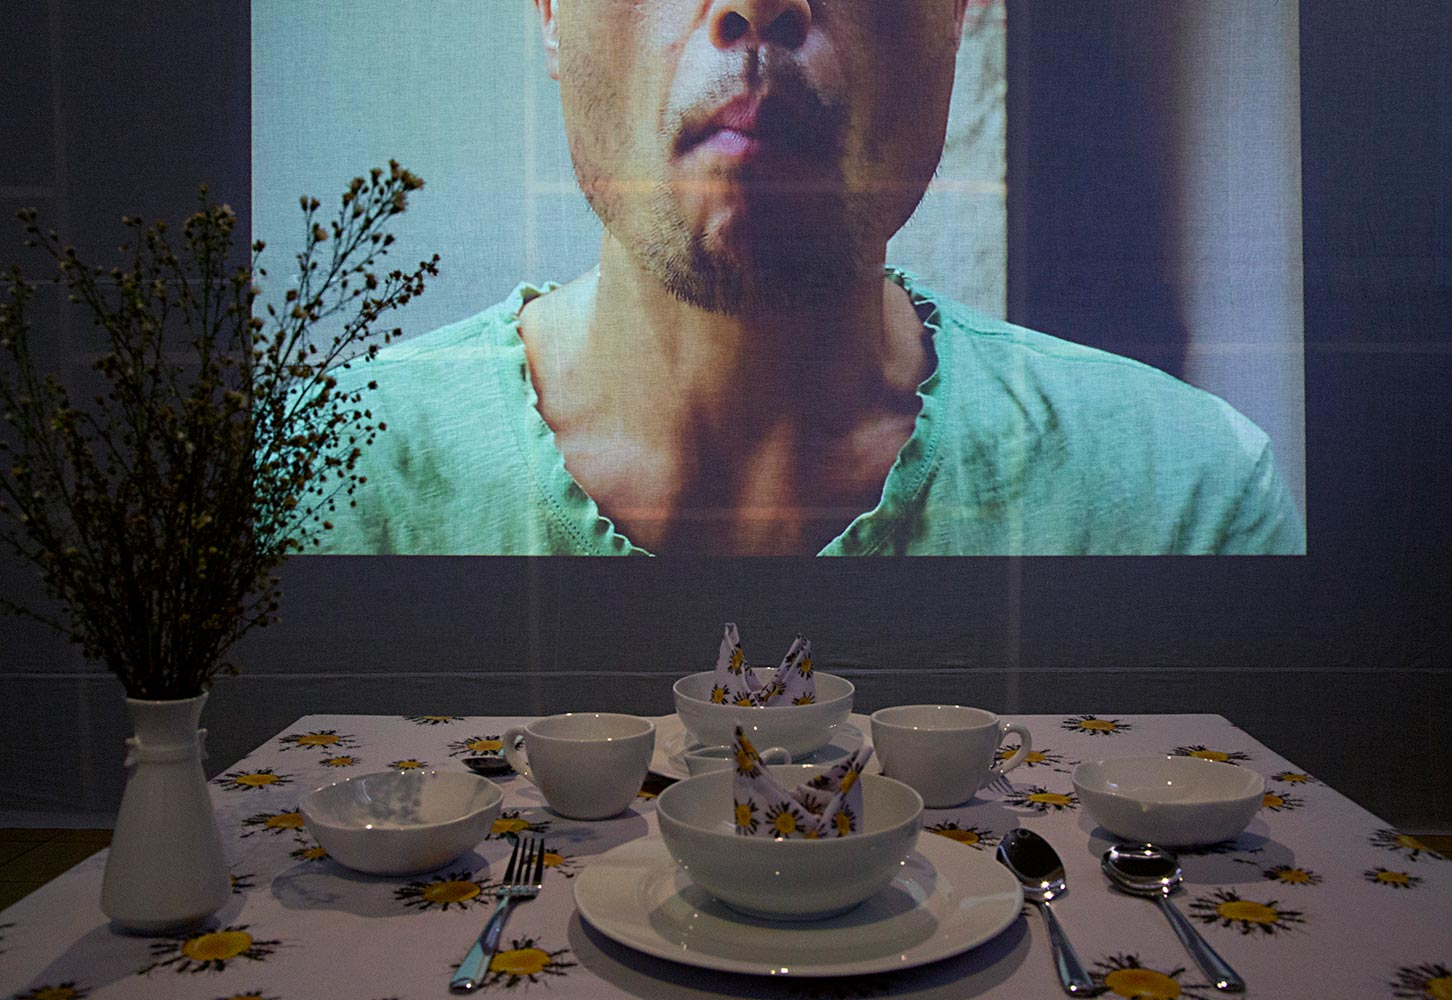 PARADE OF BUTS : A Square Room with 3 Projected Video and  NOTHING BUT A NOM NOM  Dining Room Installation, Cemeti Art House, Yogyakarta - Indonesia